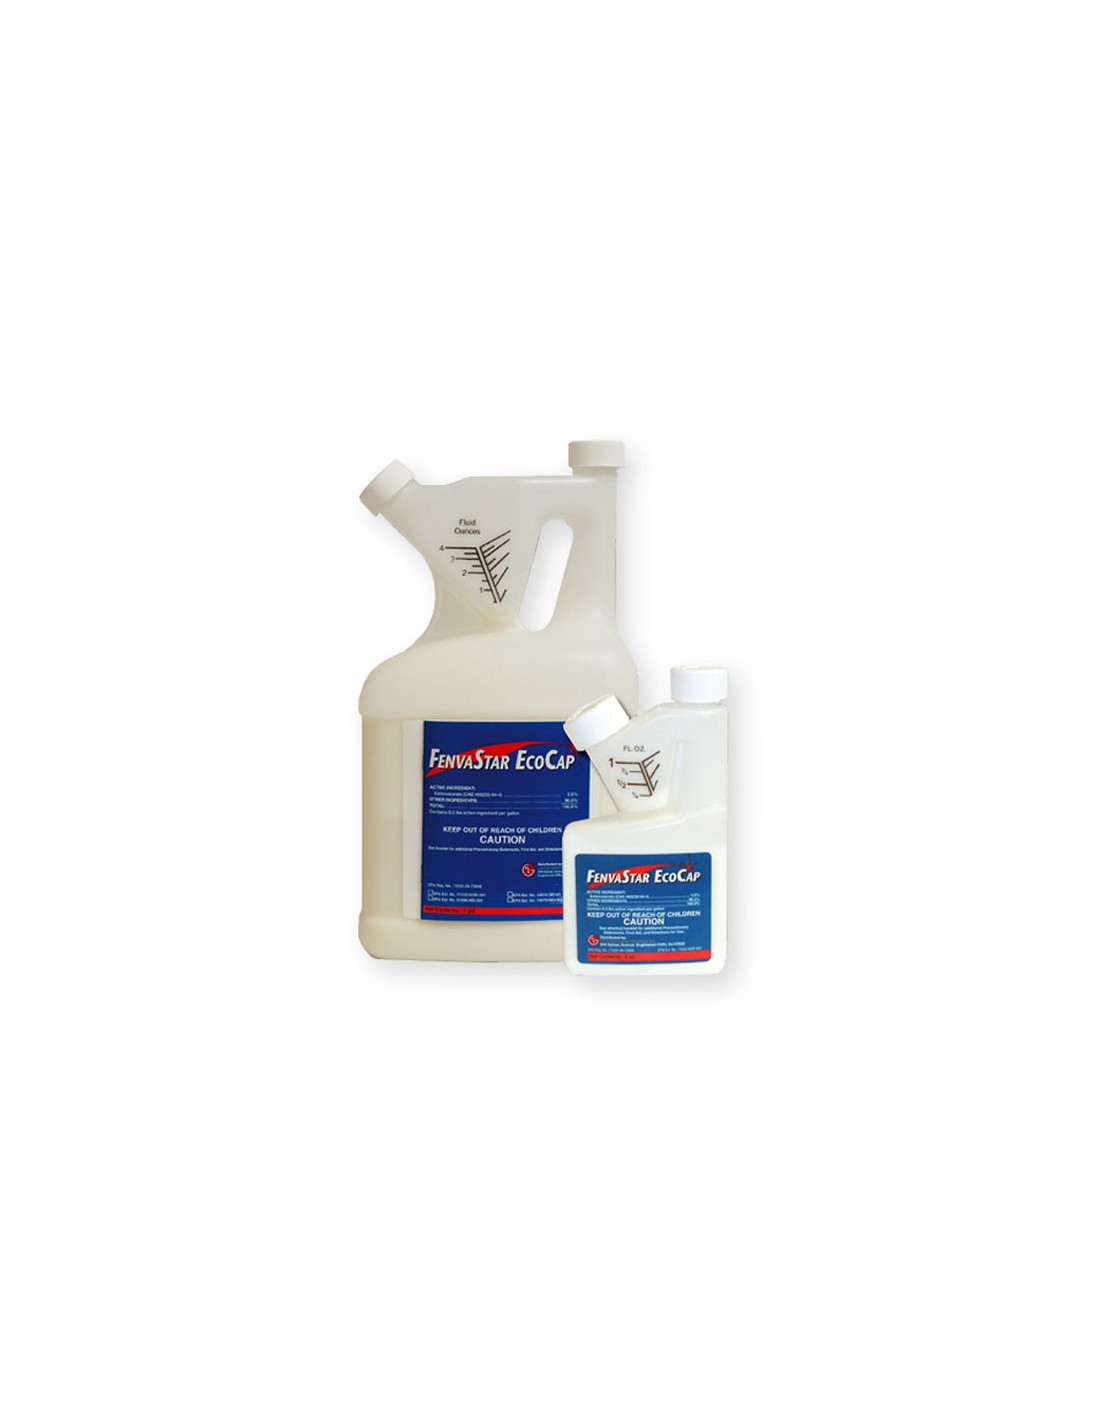 FenvaStar EcoCap Insecticide Questions & Answers